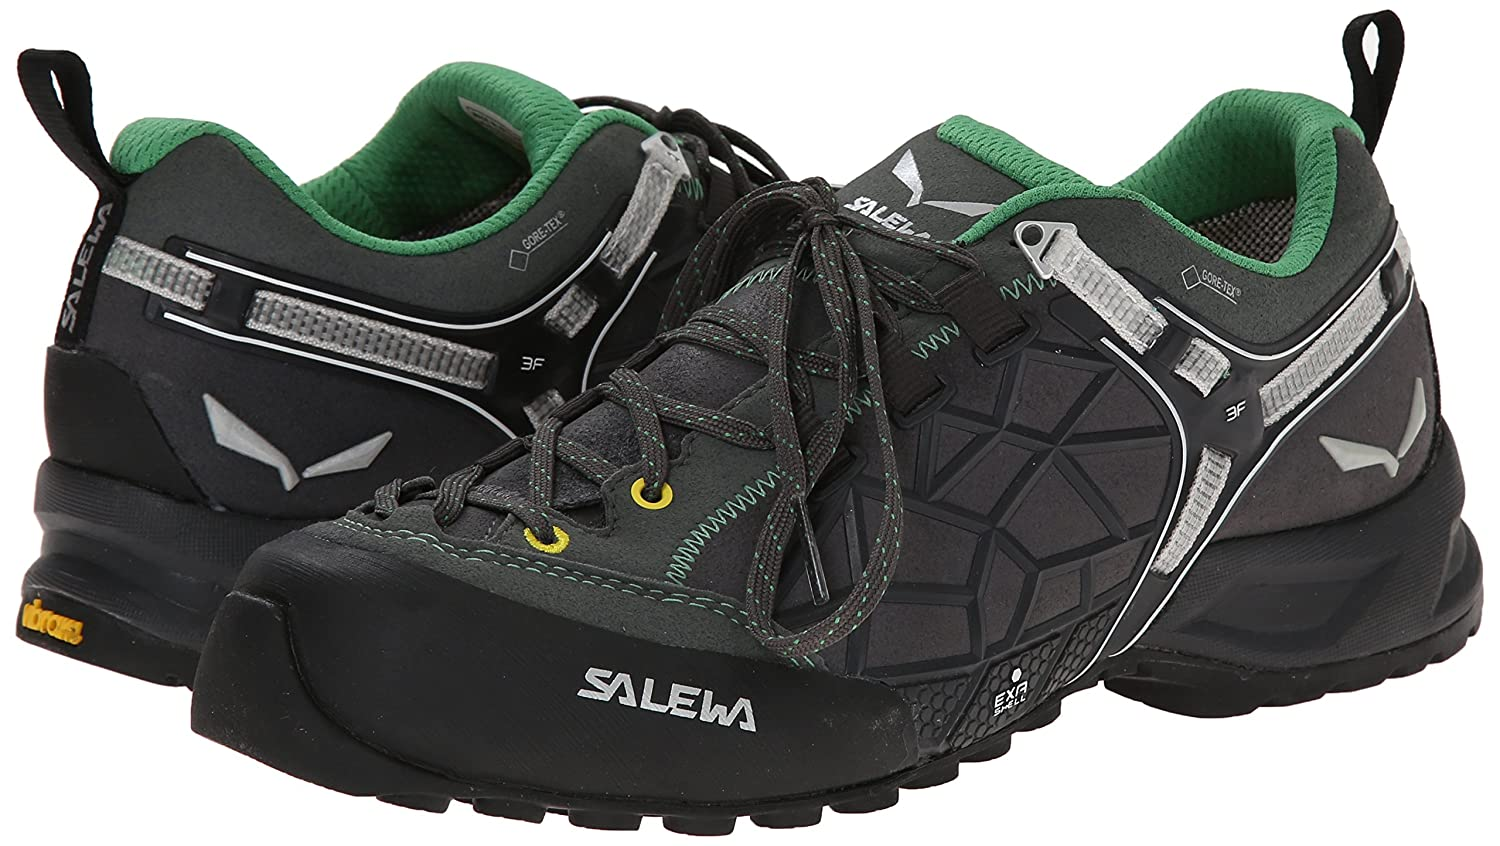 SALEWA WS Wildfire Pro GTX Scarpe, Nero (0791), 5: Amazon.it: Scarpe e borse